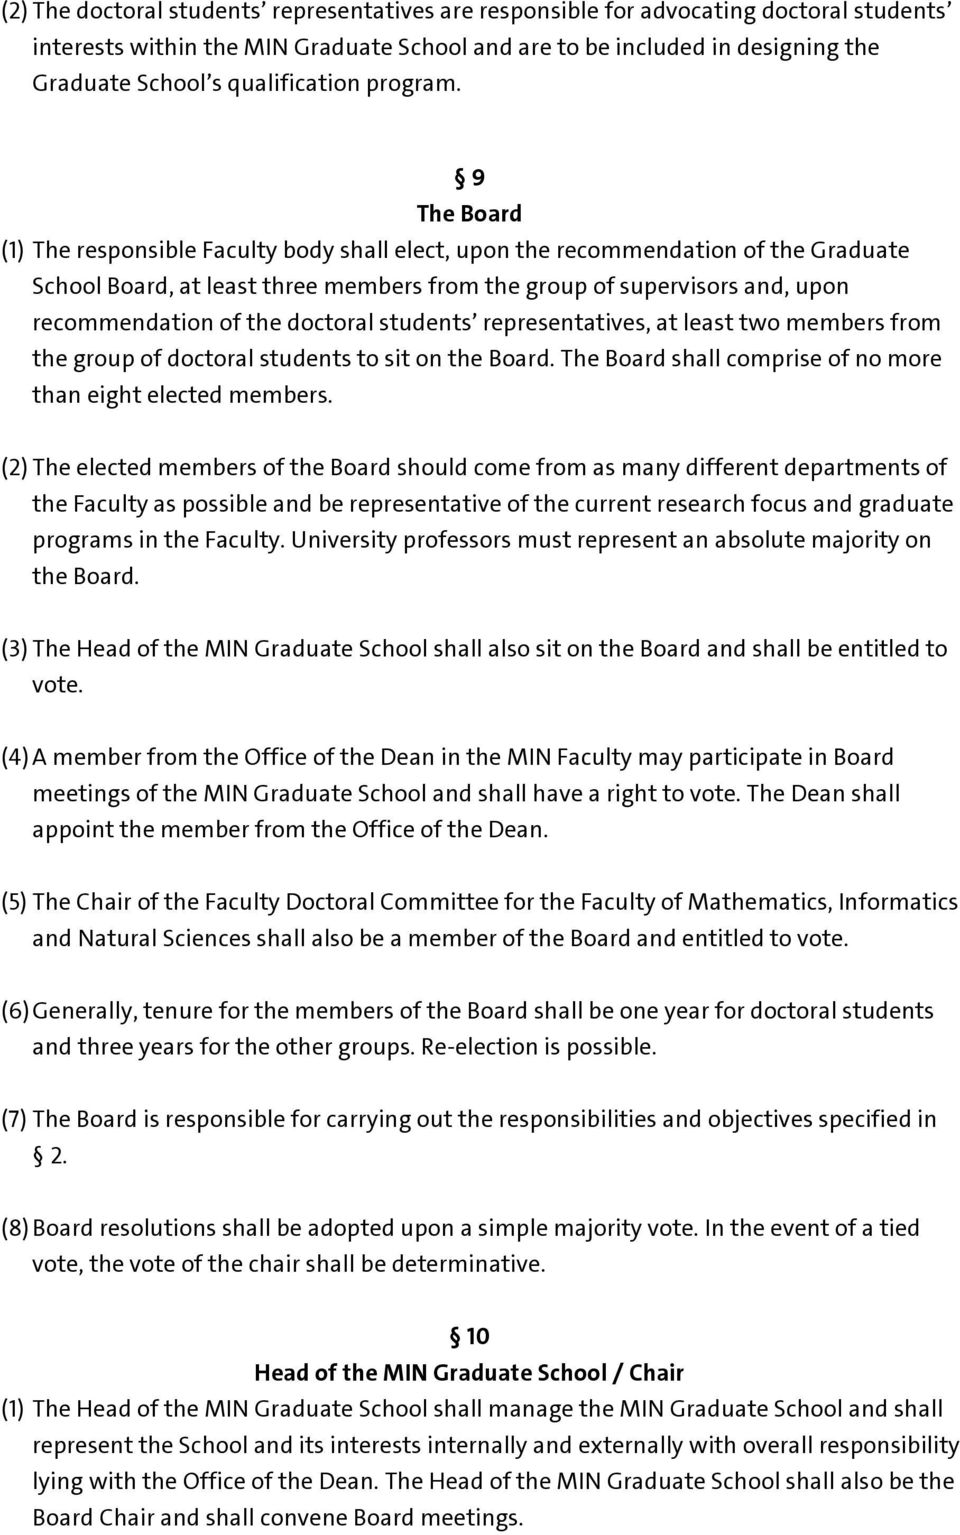 9 The Board (1) The responsible Faculty body shall elect, upon the recommendation of the Graduate School Board, at least three members from the group of supervisors and, upon recommendation of the